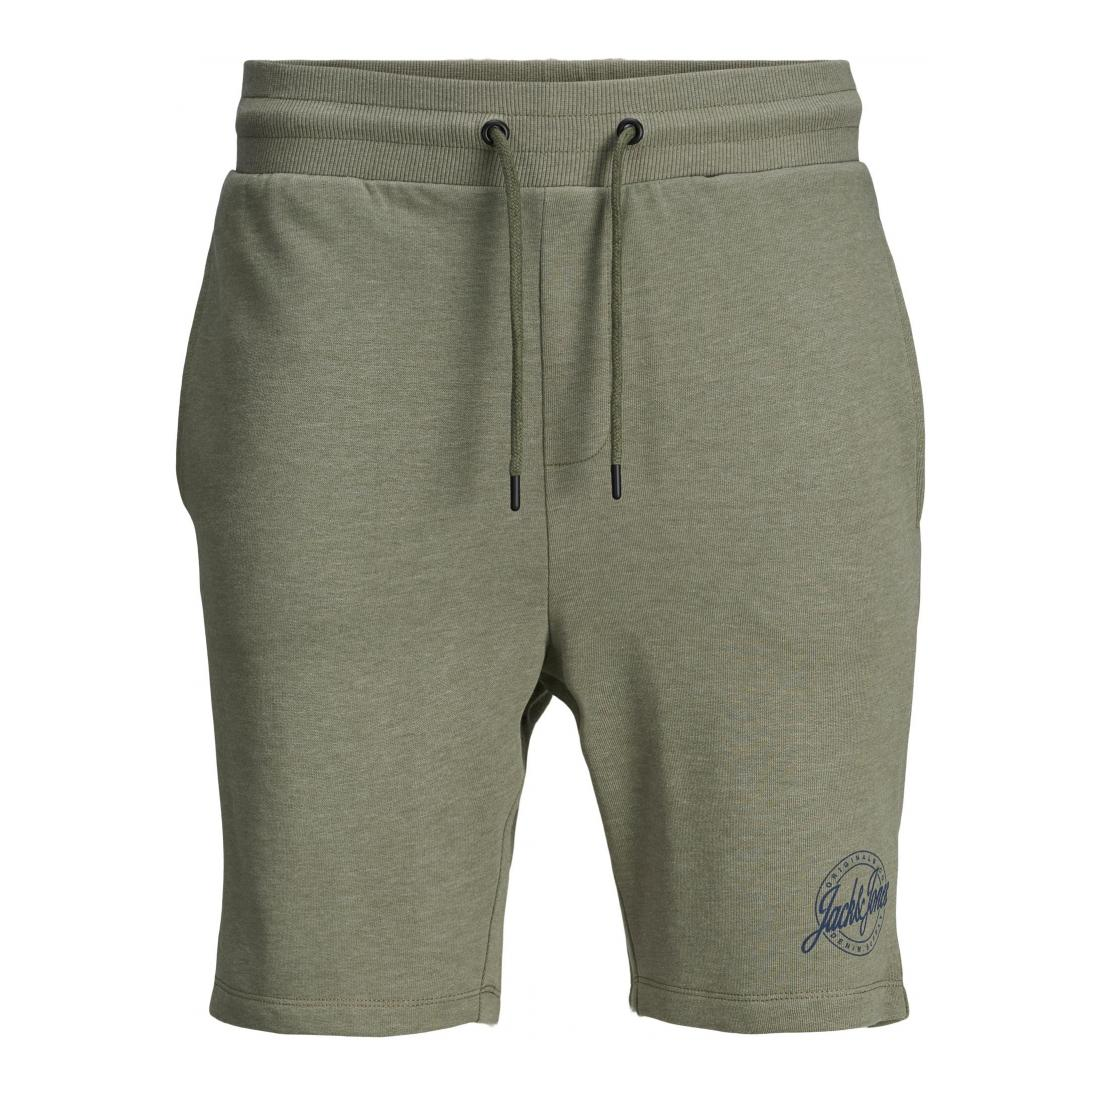 Jack & Jones Bermuda/Shorts Herren JJI SHARK JJSWEAT SHORT M